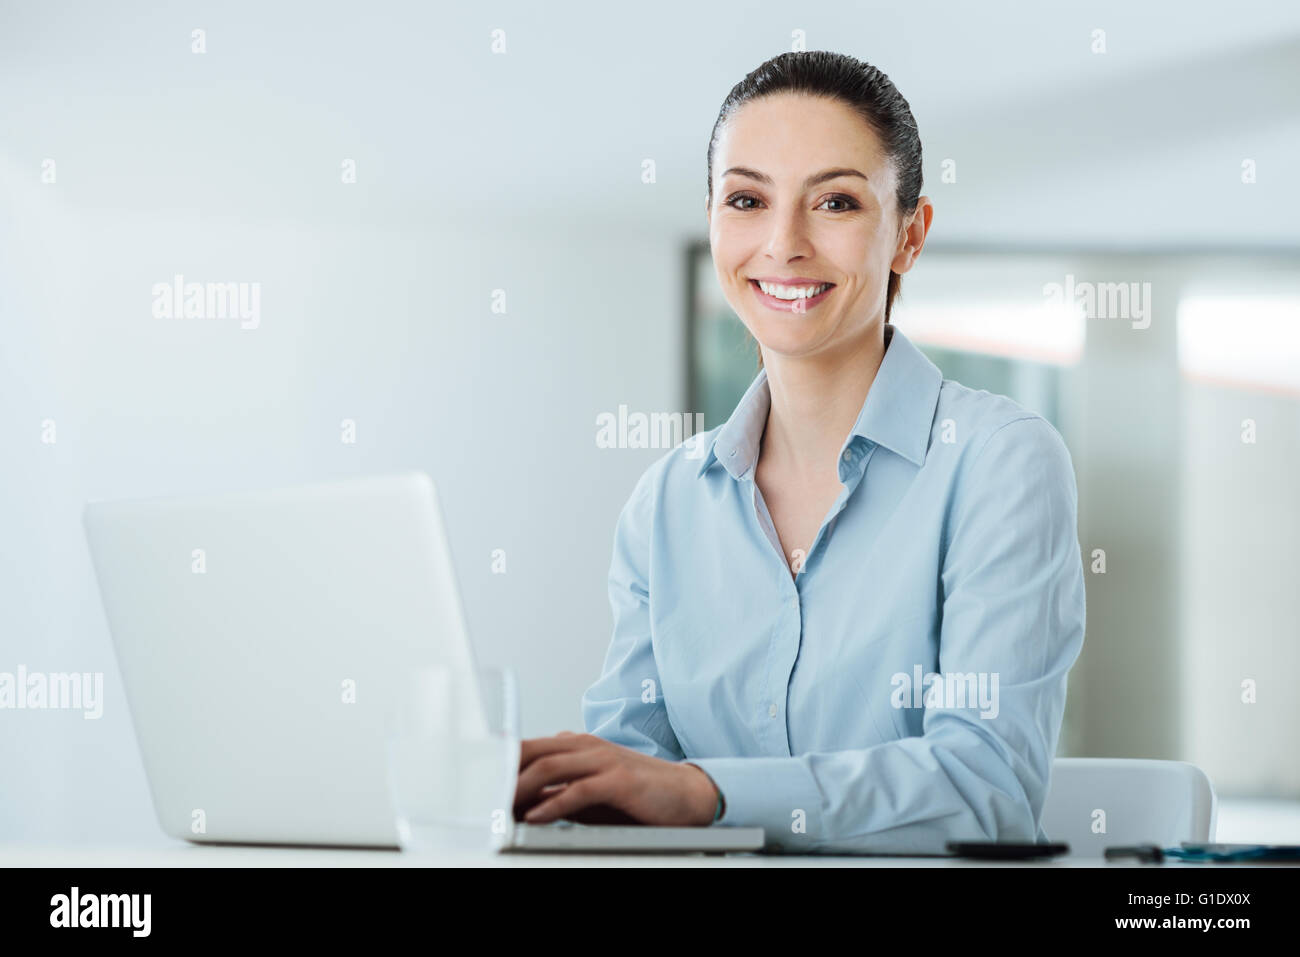 Smiling young businesswoman working at office desk and typing on a laptop, she is looking at camera - Stock Image